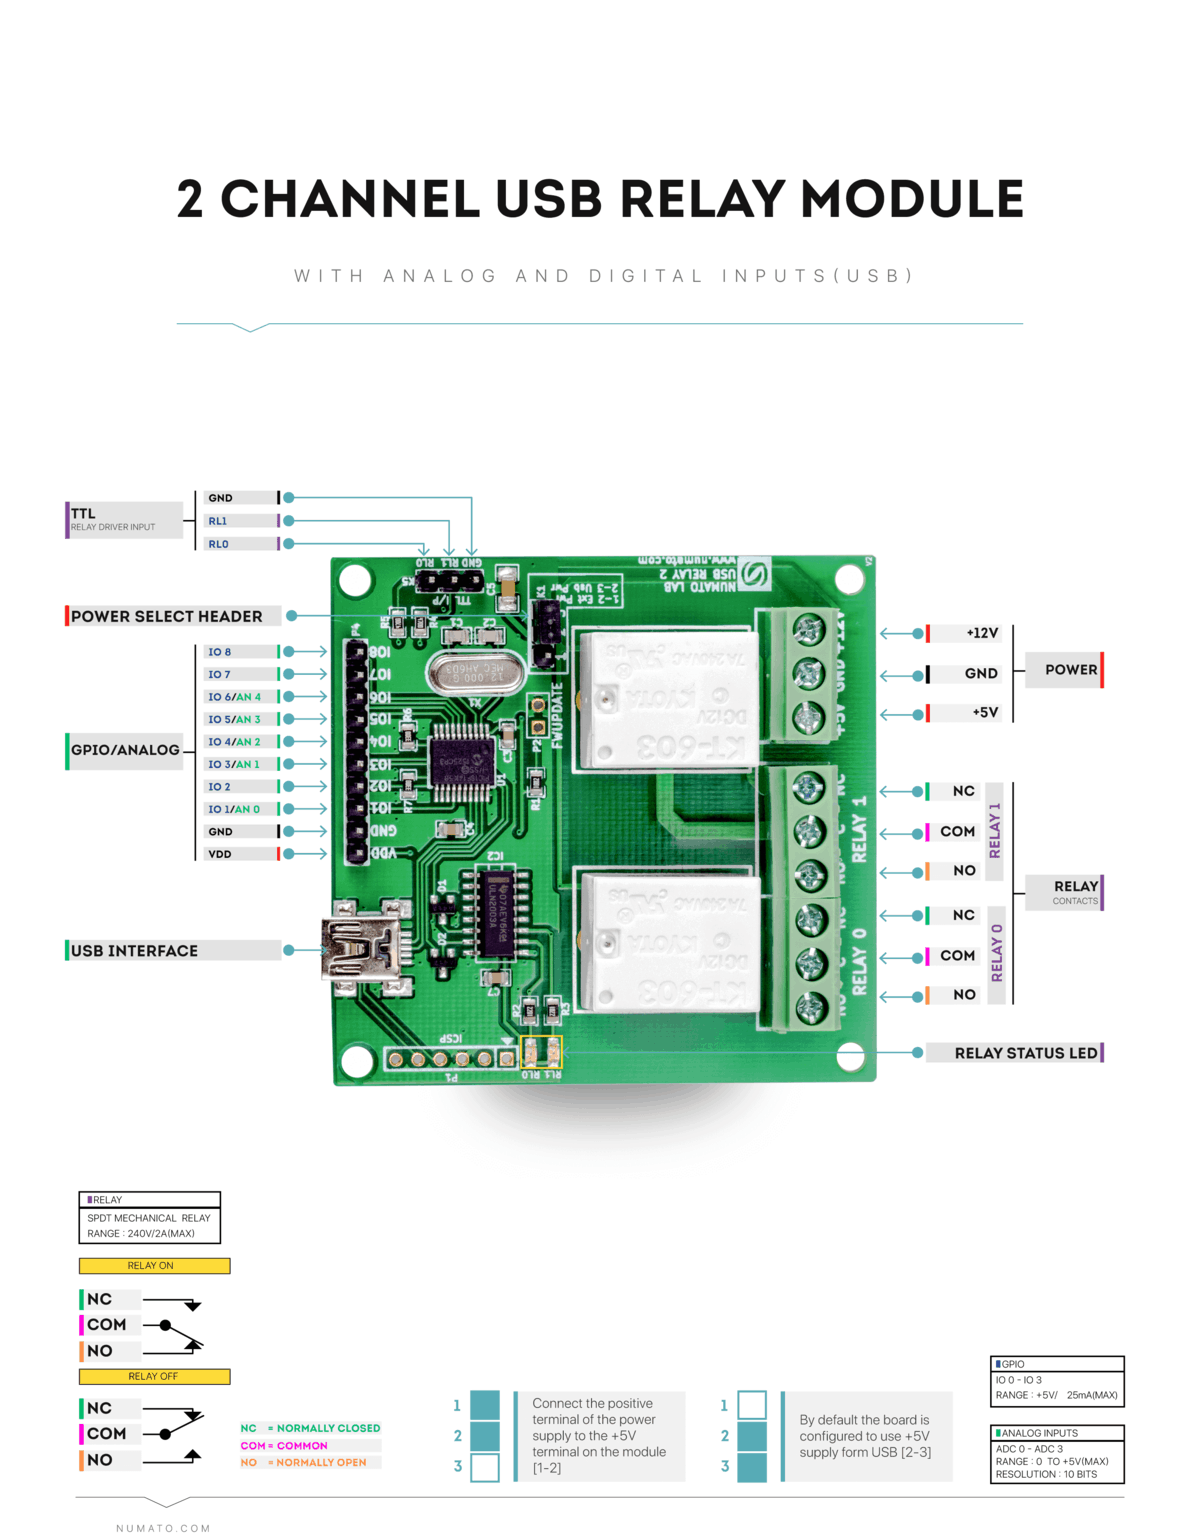 2 Channel USB Relay Module With GPIO And Analog Inputs | Numato Lab